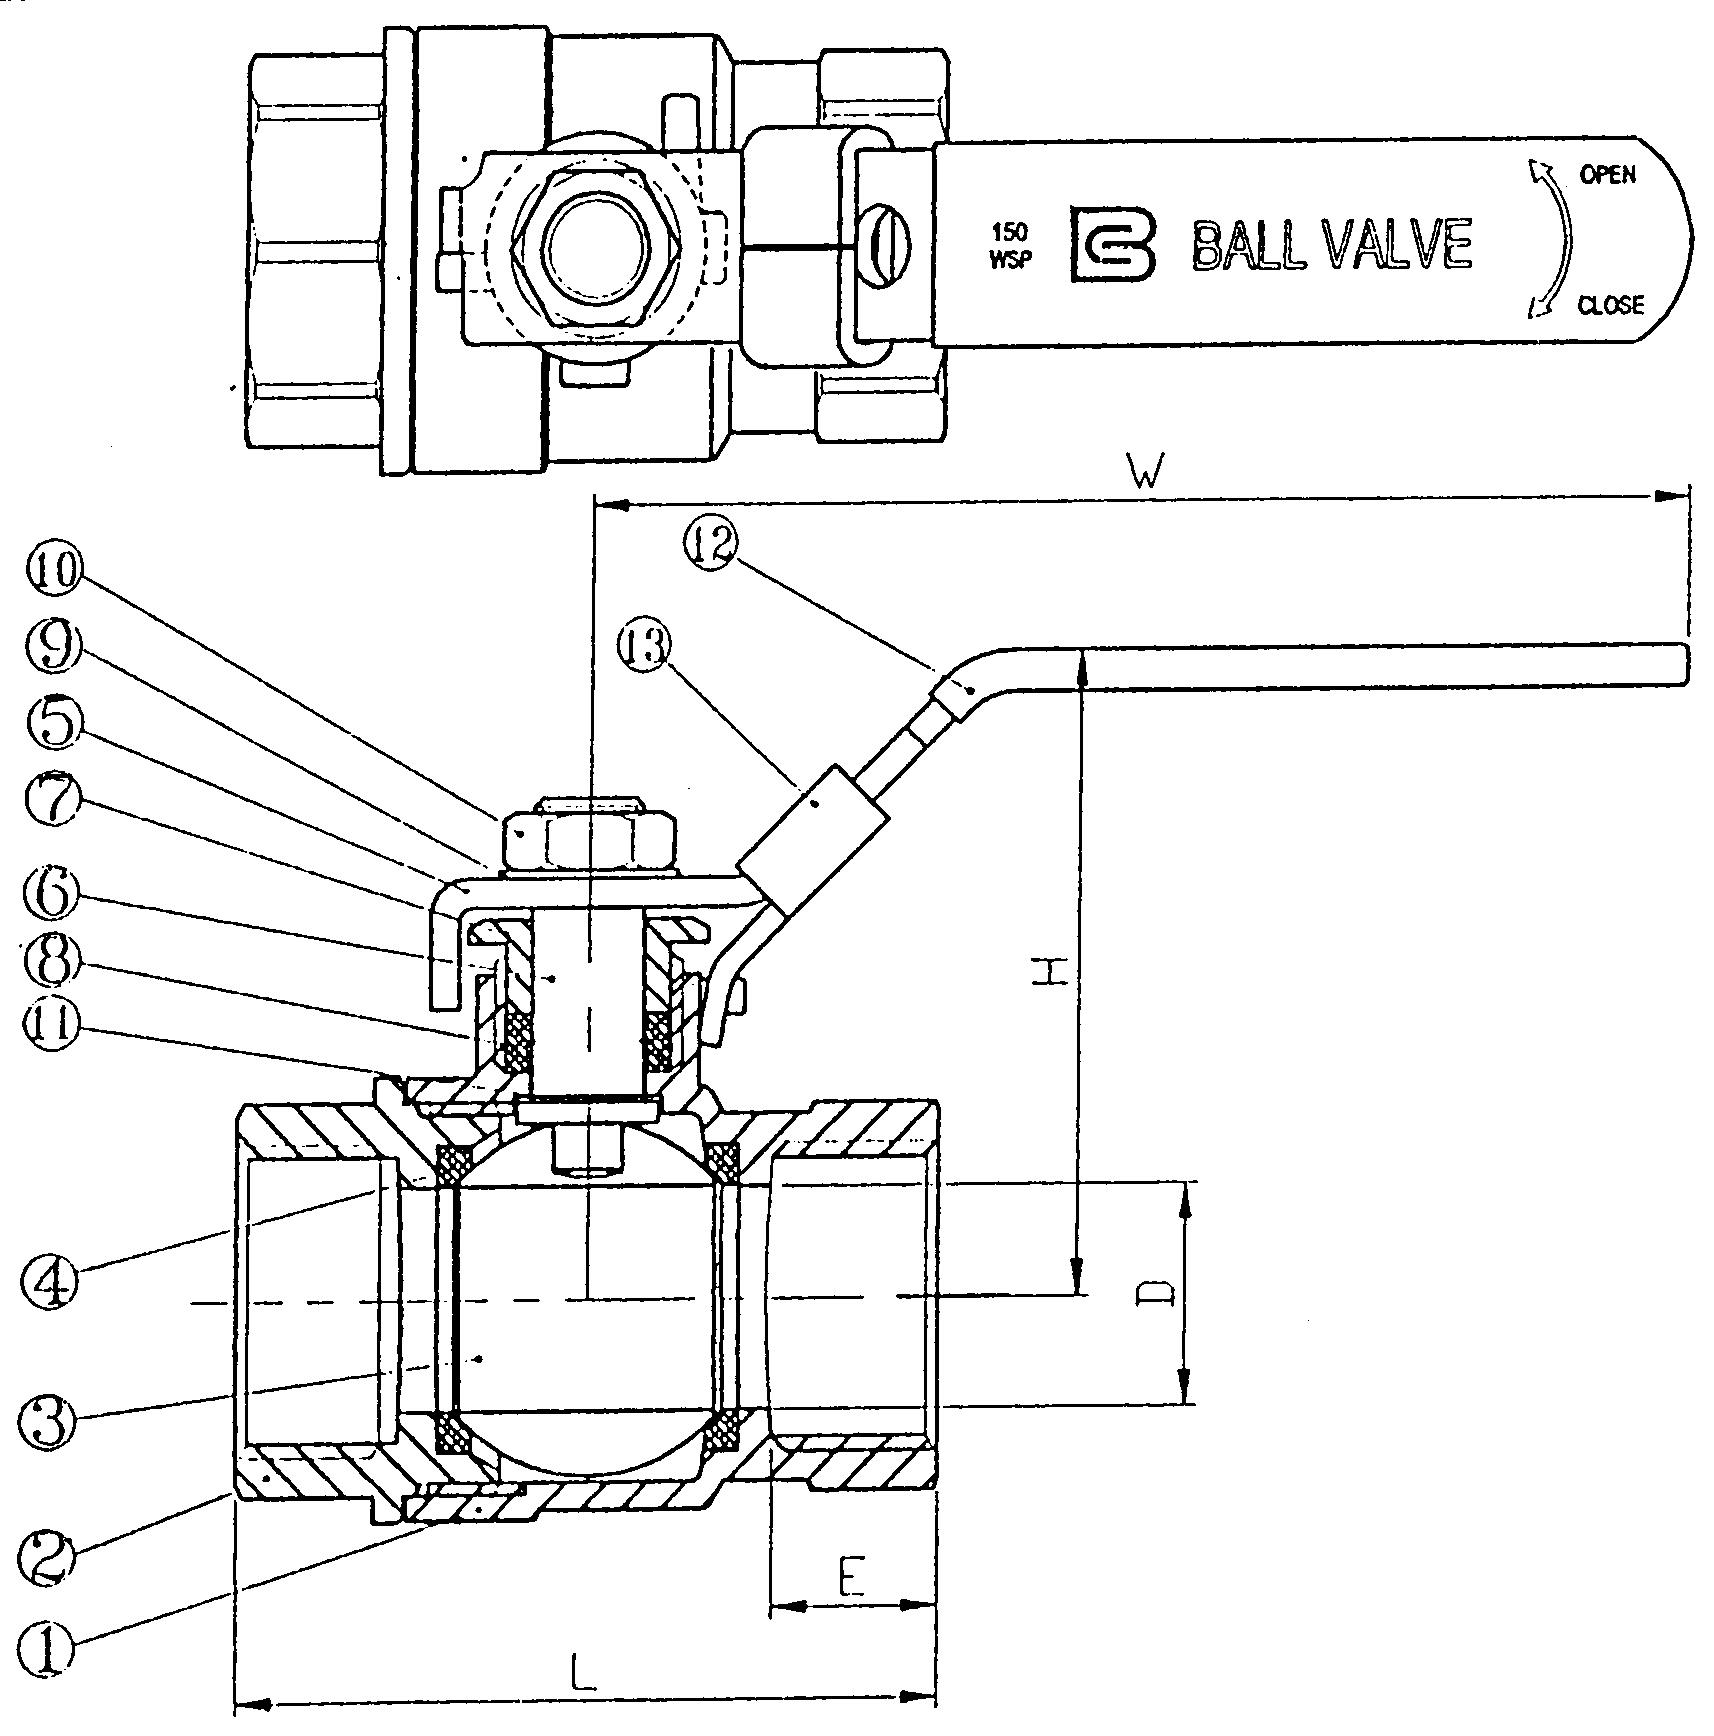 closed ball valve schematic symbol   475837